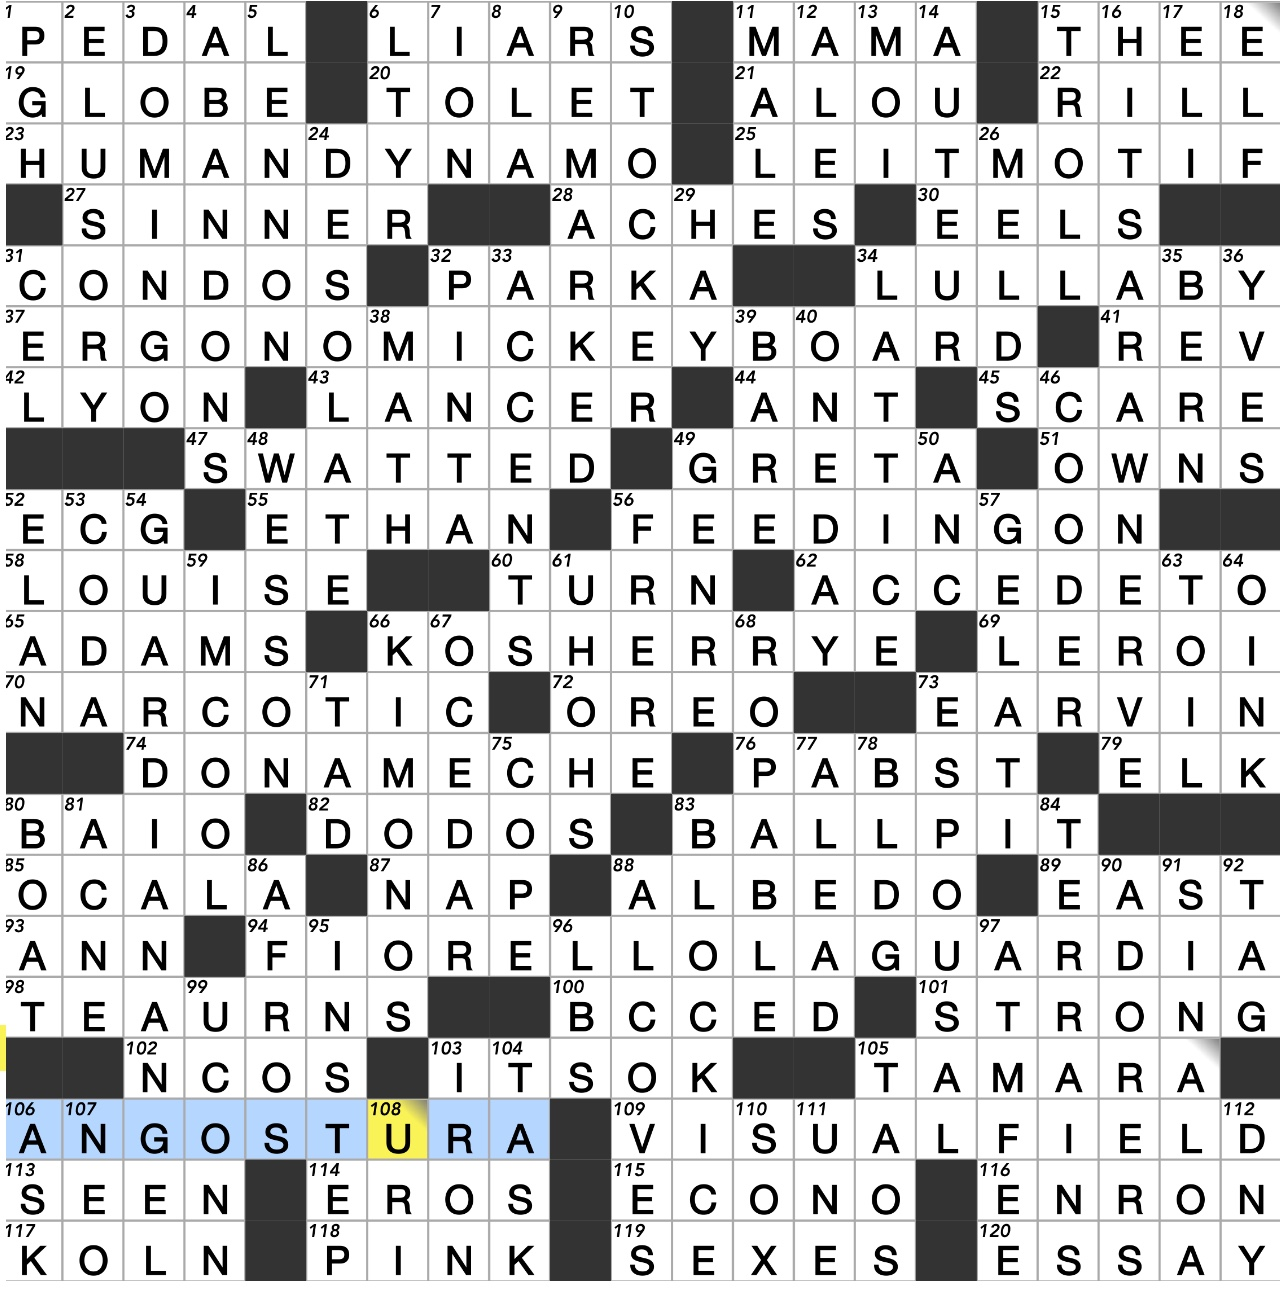 Saturday February 9 2019 Diary Of A Crossword Fiend